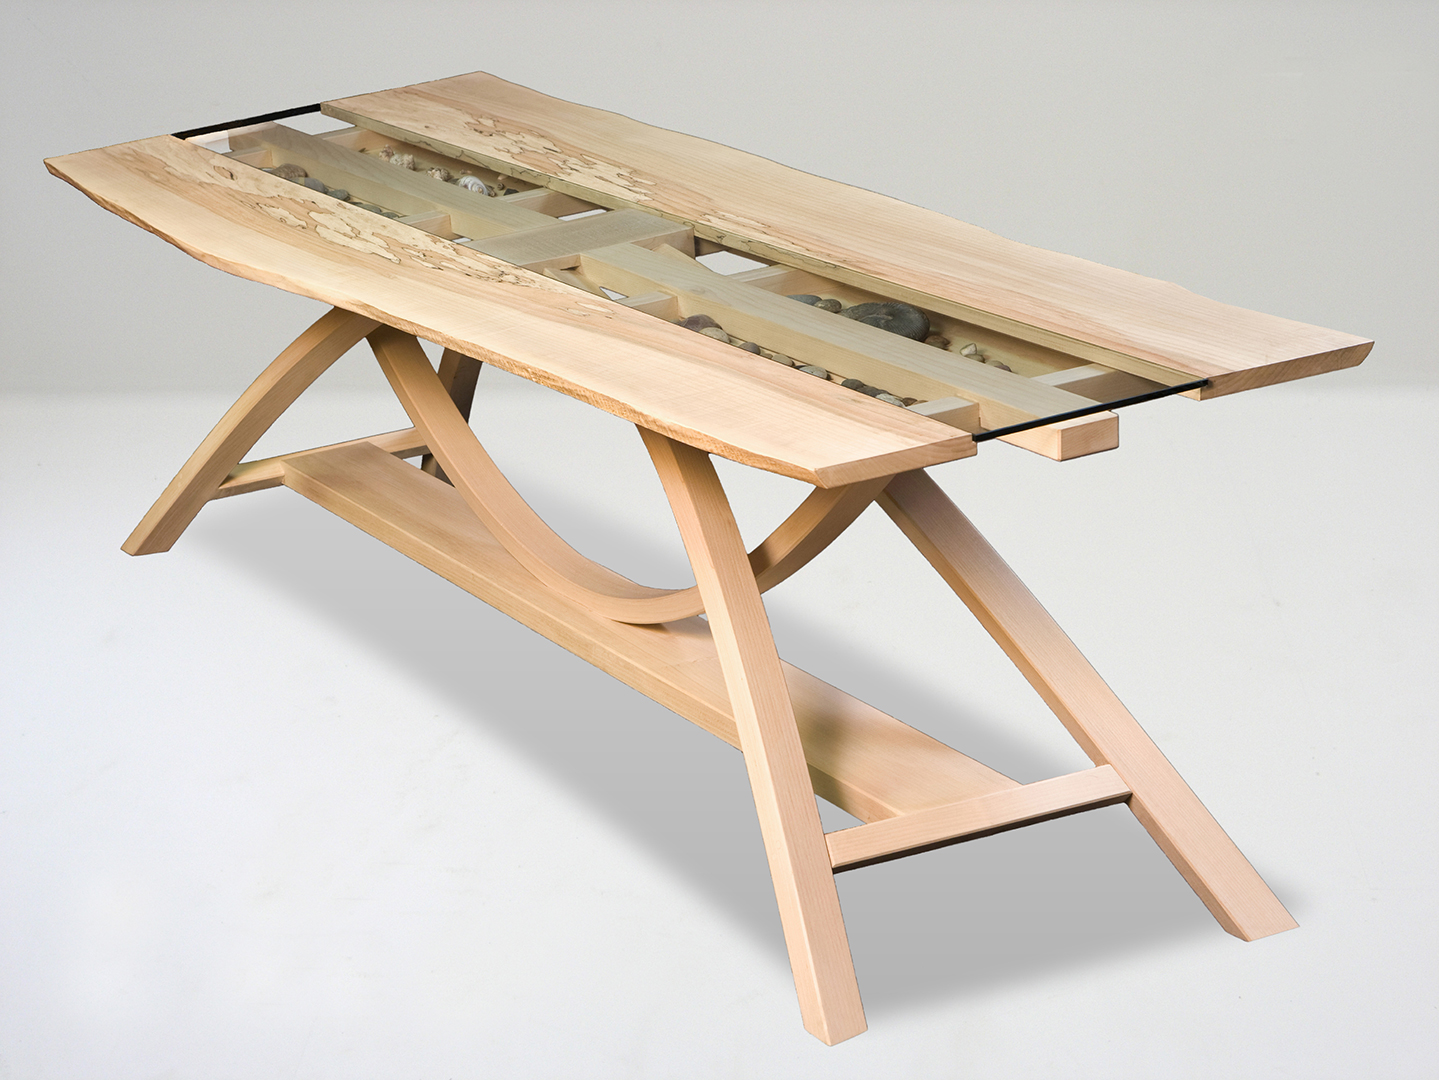 Reclaimed Wood Dining Table Vancouver Bc Custom Dining Table and